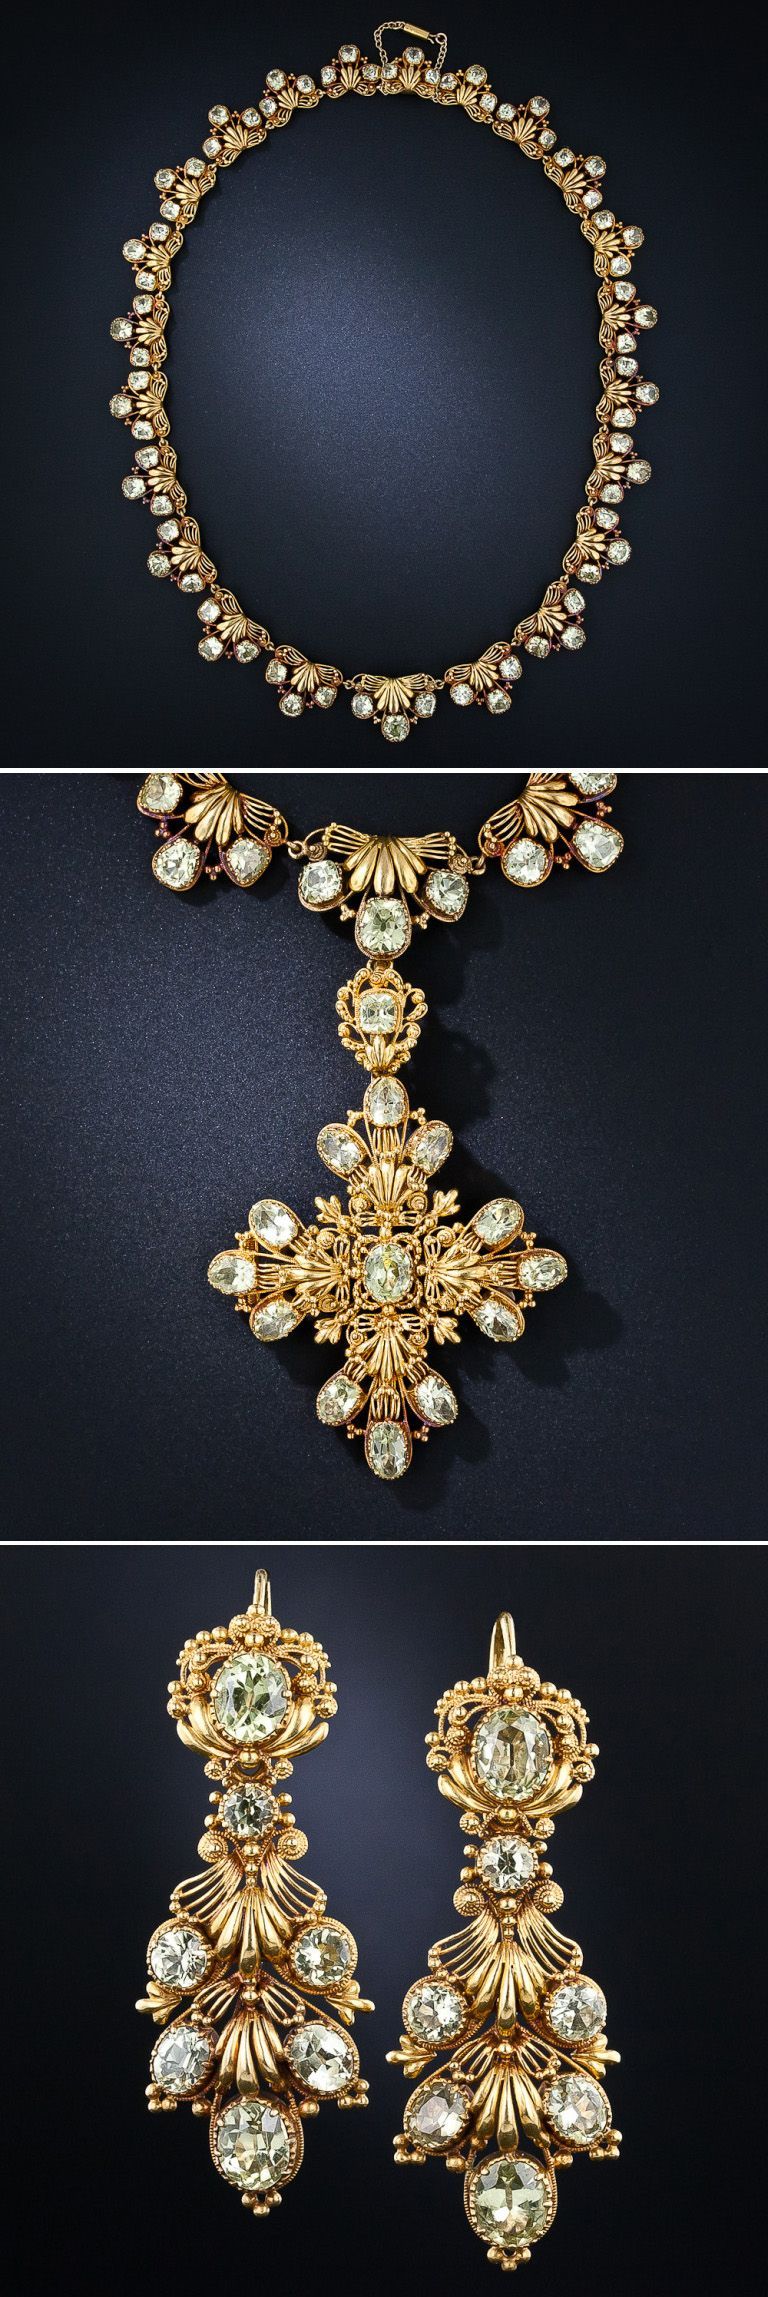 Early 19th century chrysoberyl parure, 26 carats total